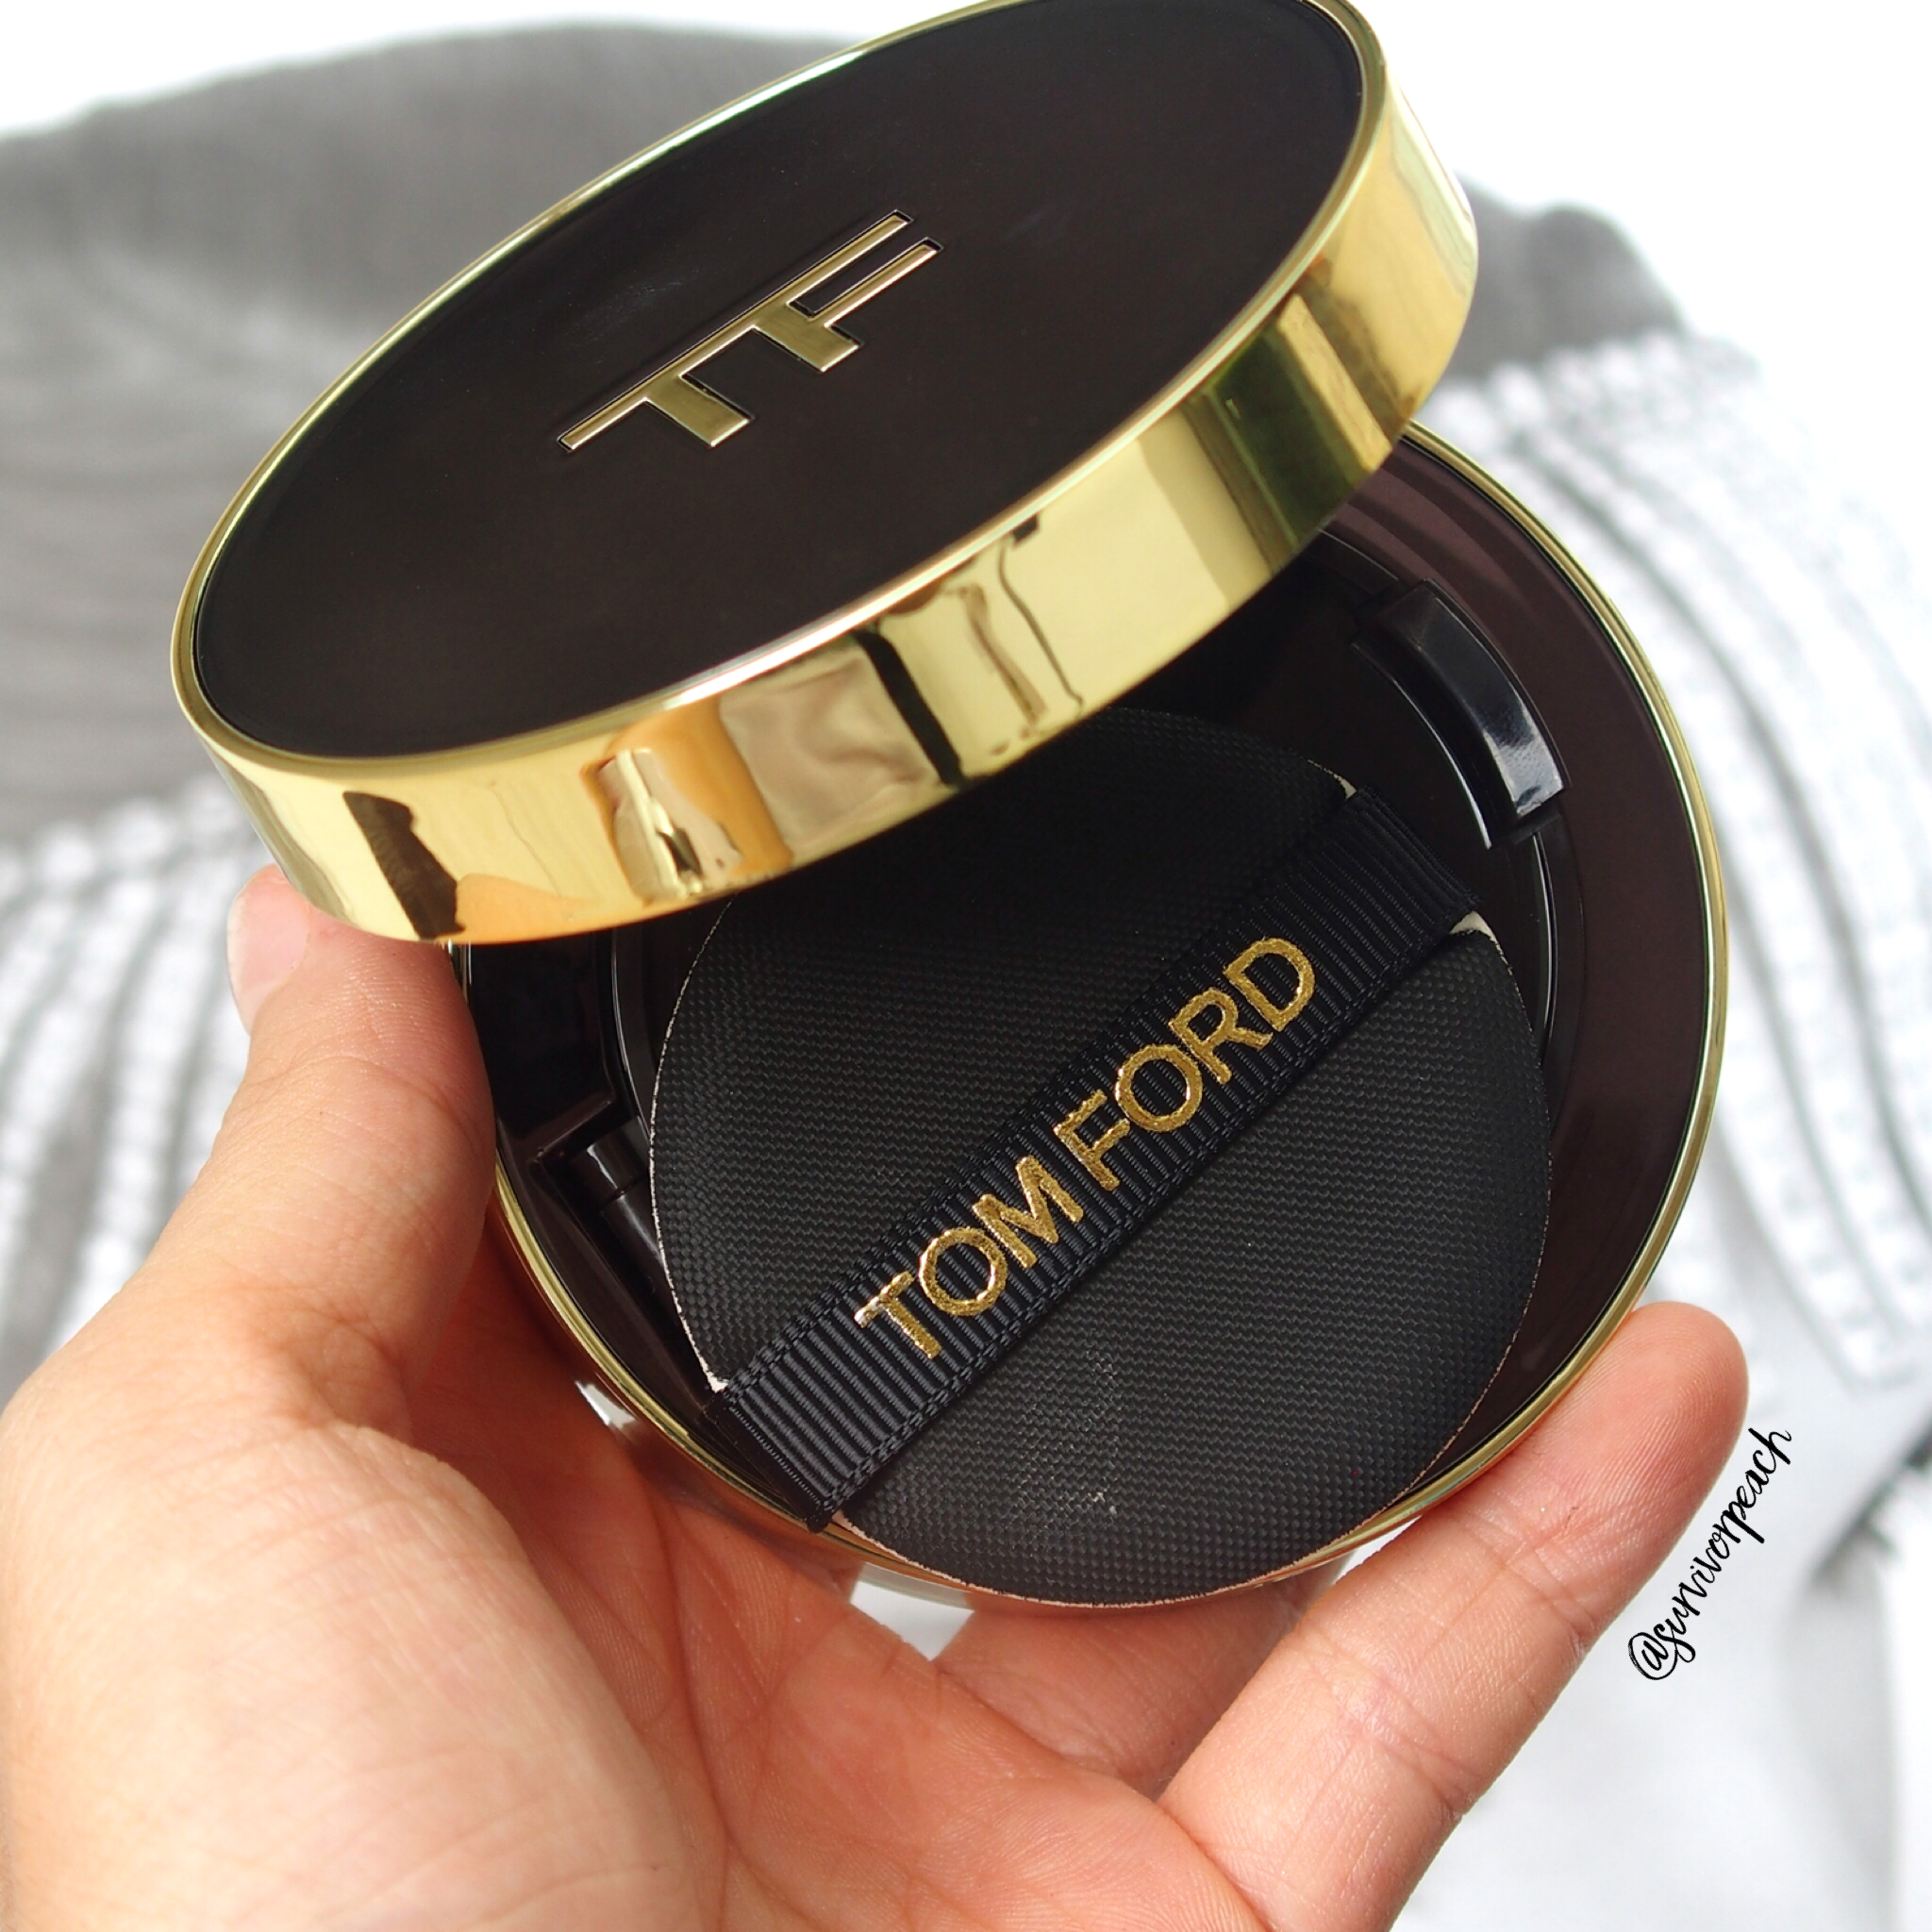 Tom Ford Traceless Touch Cushion